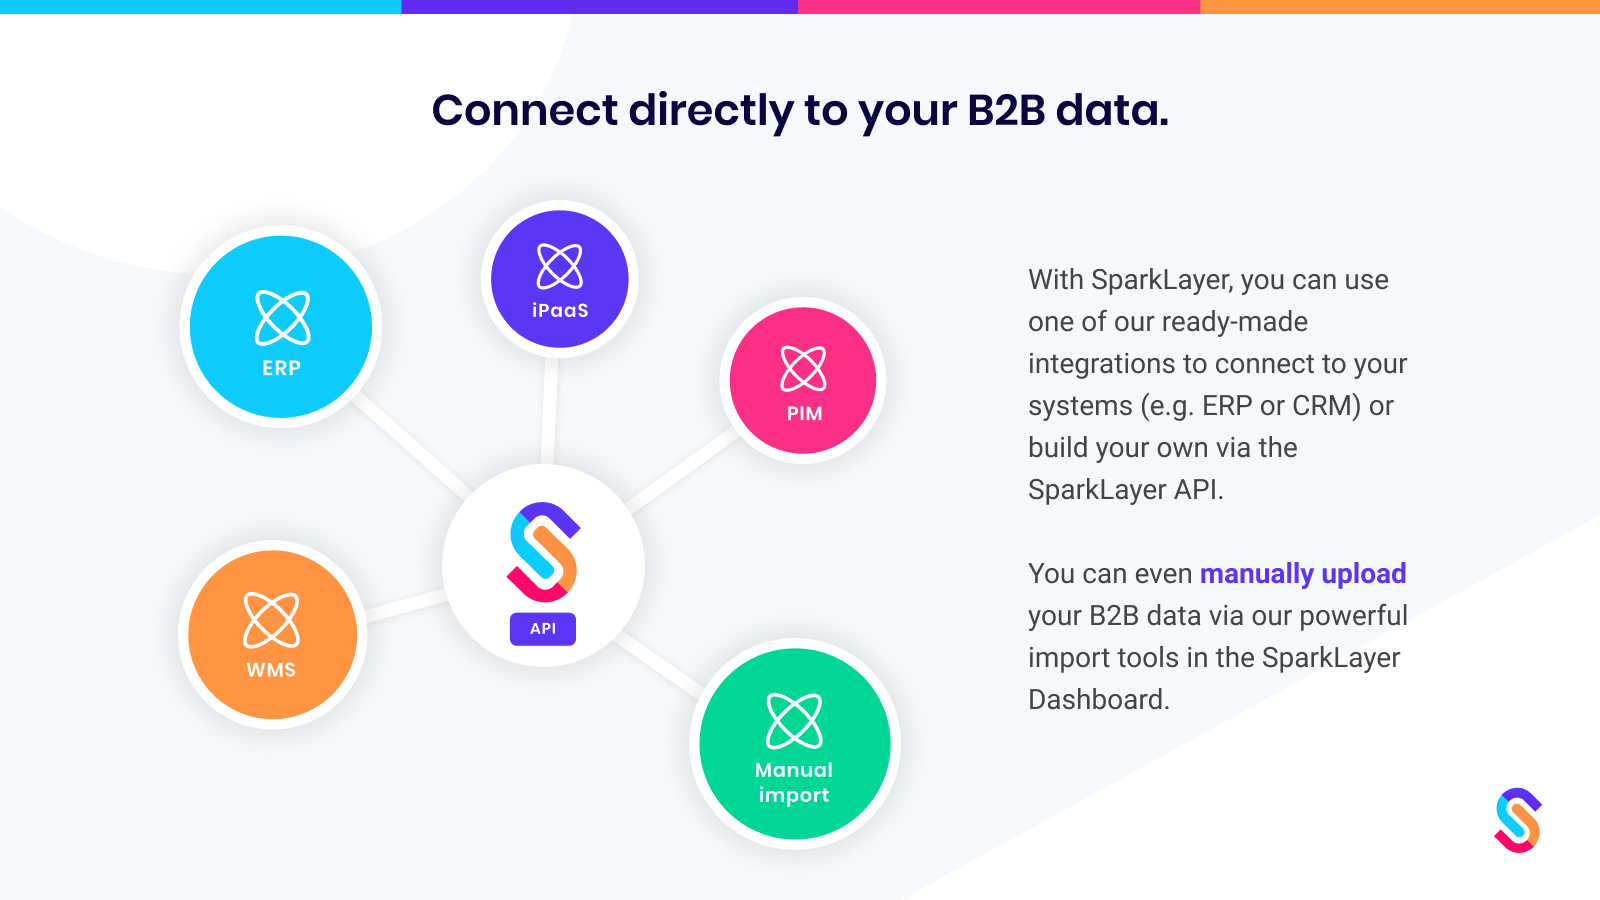 Connect your B2B data